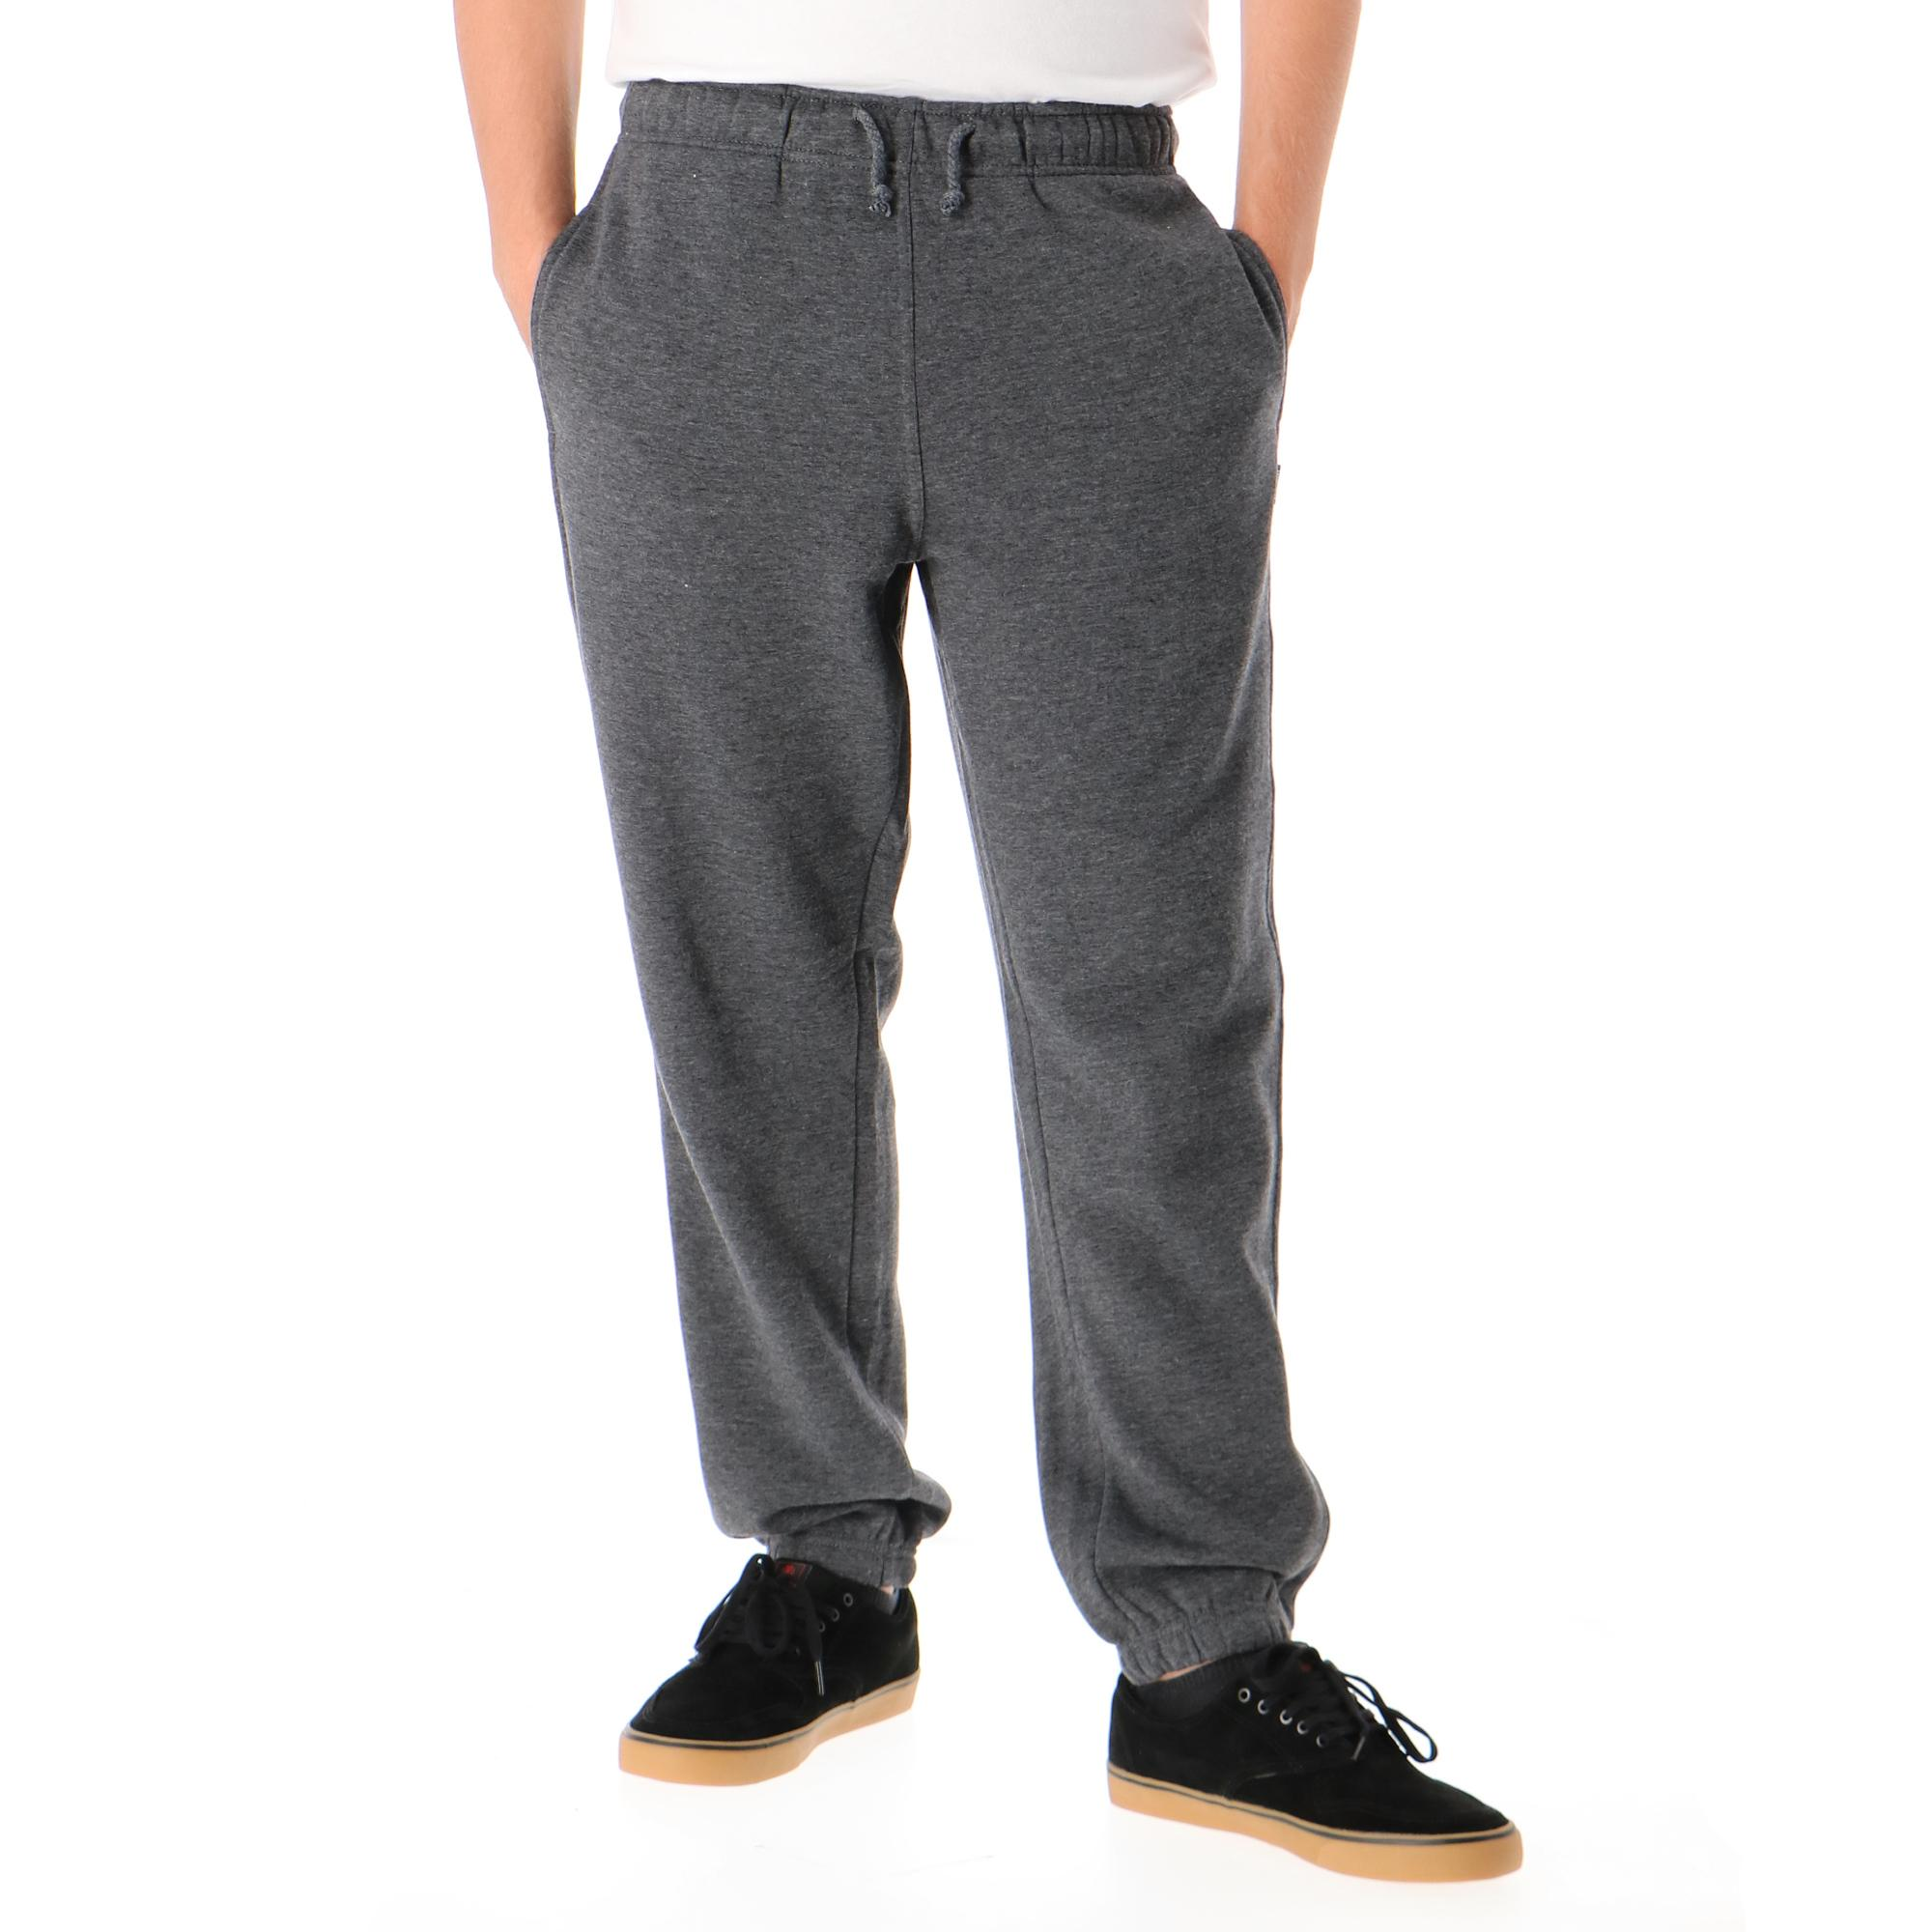 Element 92 Track Pant Charcoal heather